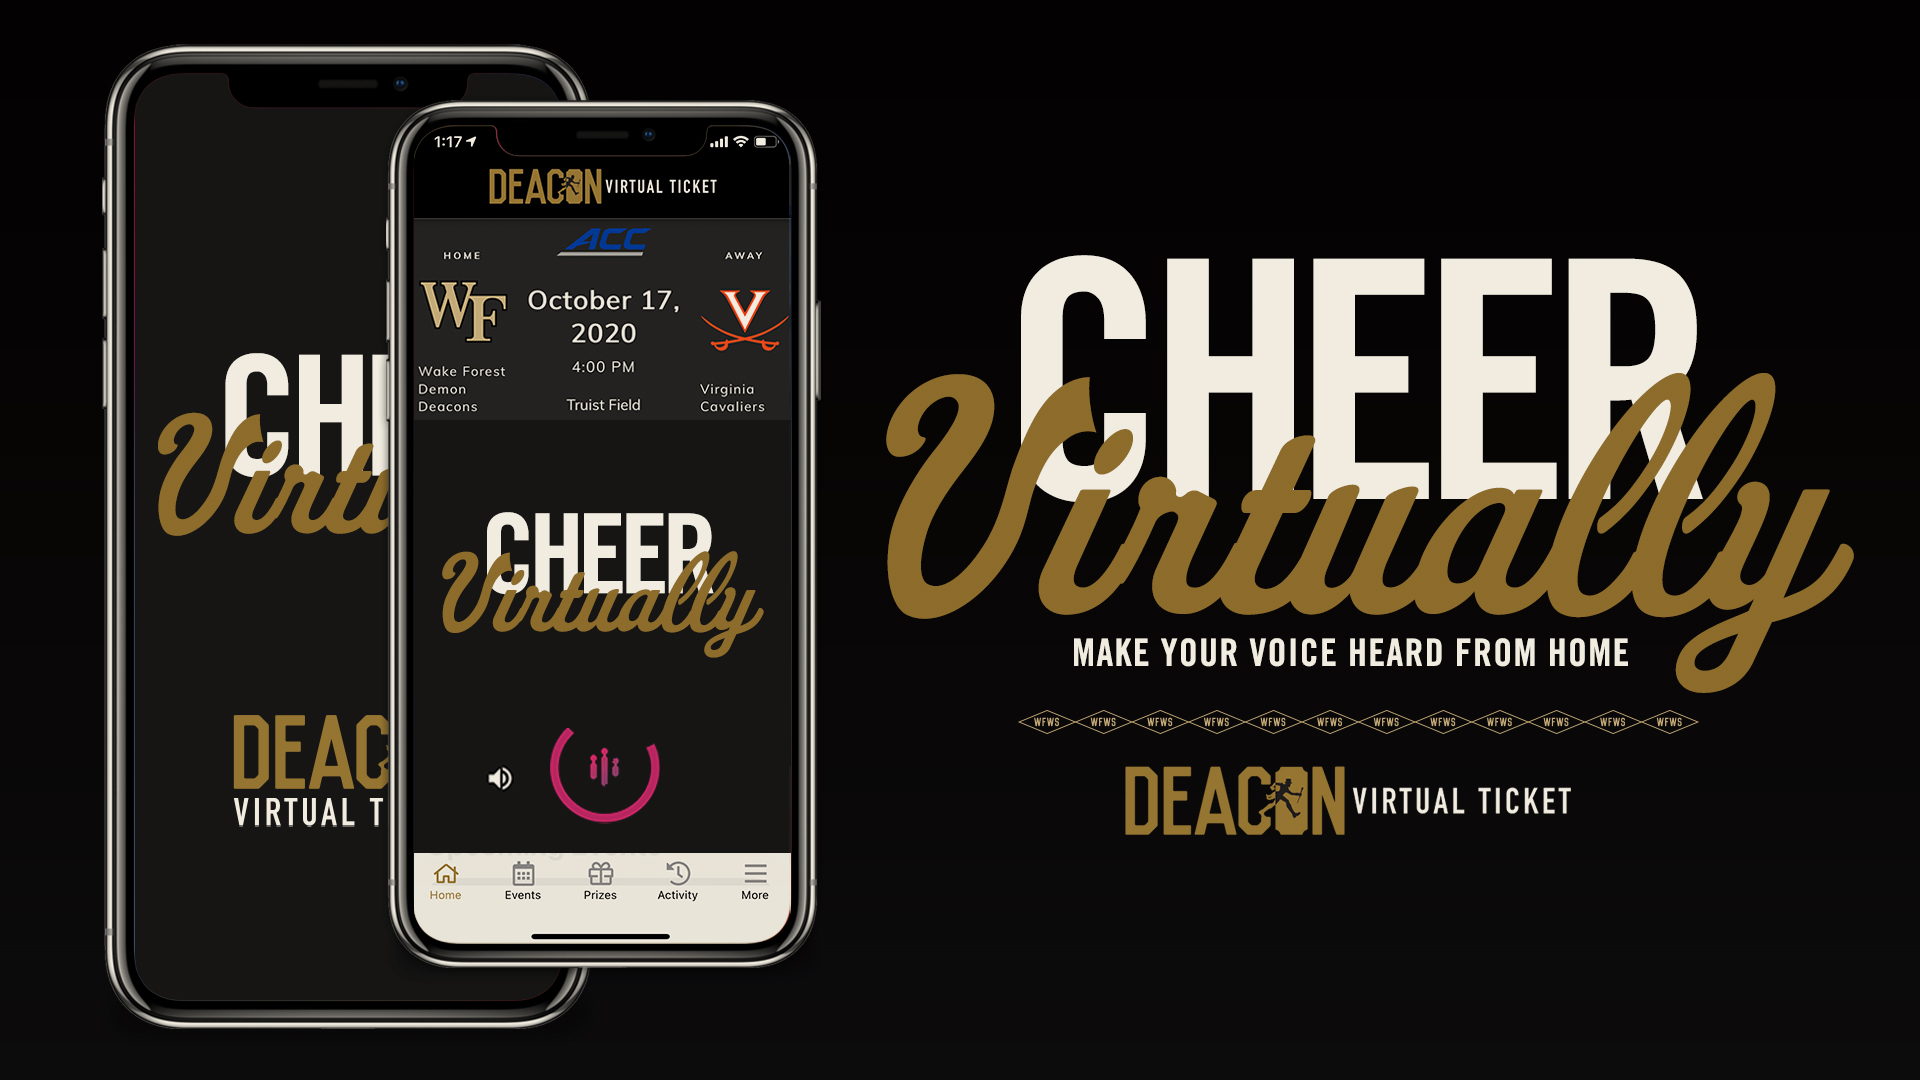 Cheer Virtually